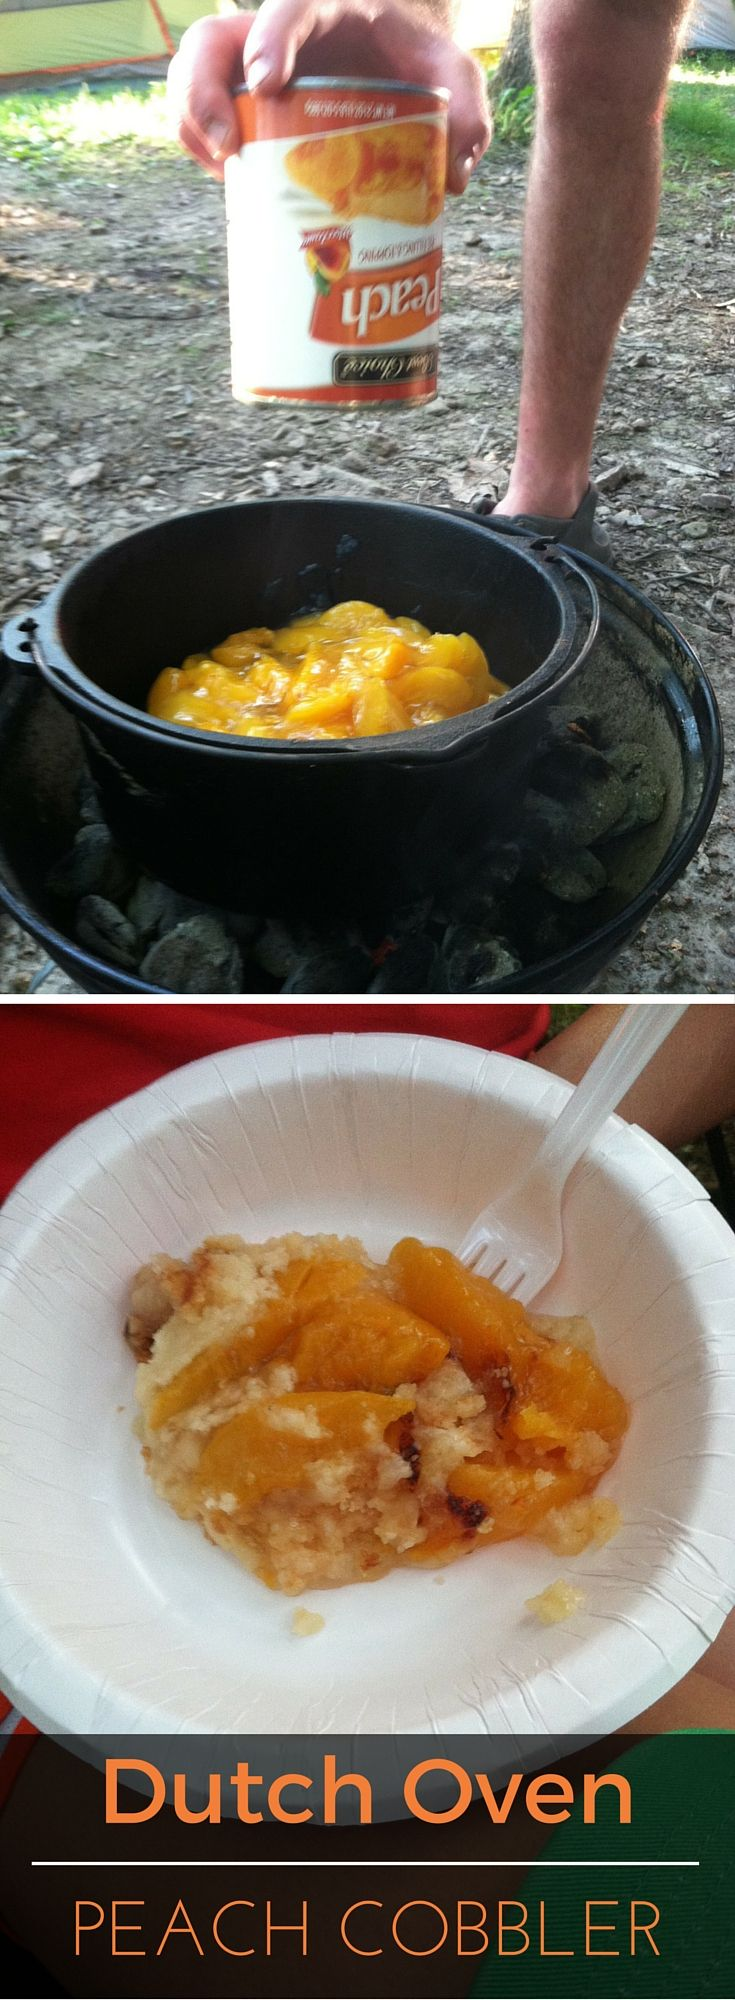 Dutch Oven Peach Cobbler - a fantastic camping recipe that only takes 3 ingredients!   Best Choice Brand.